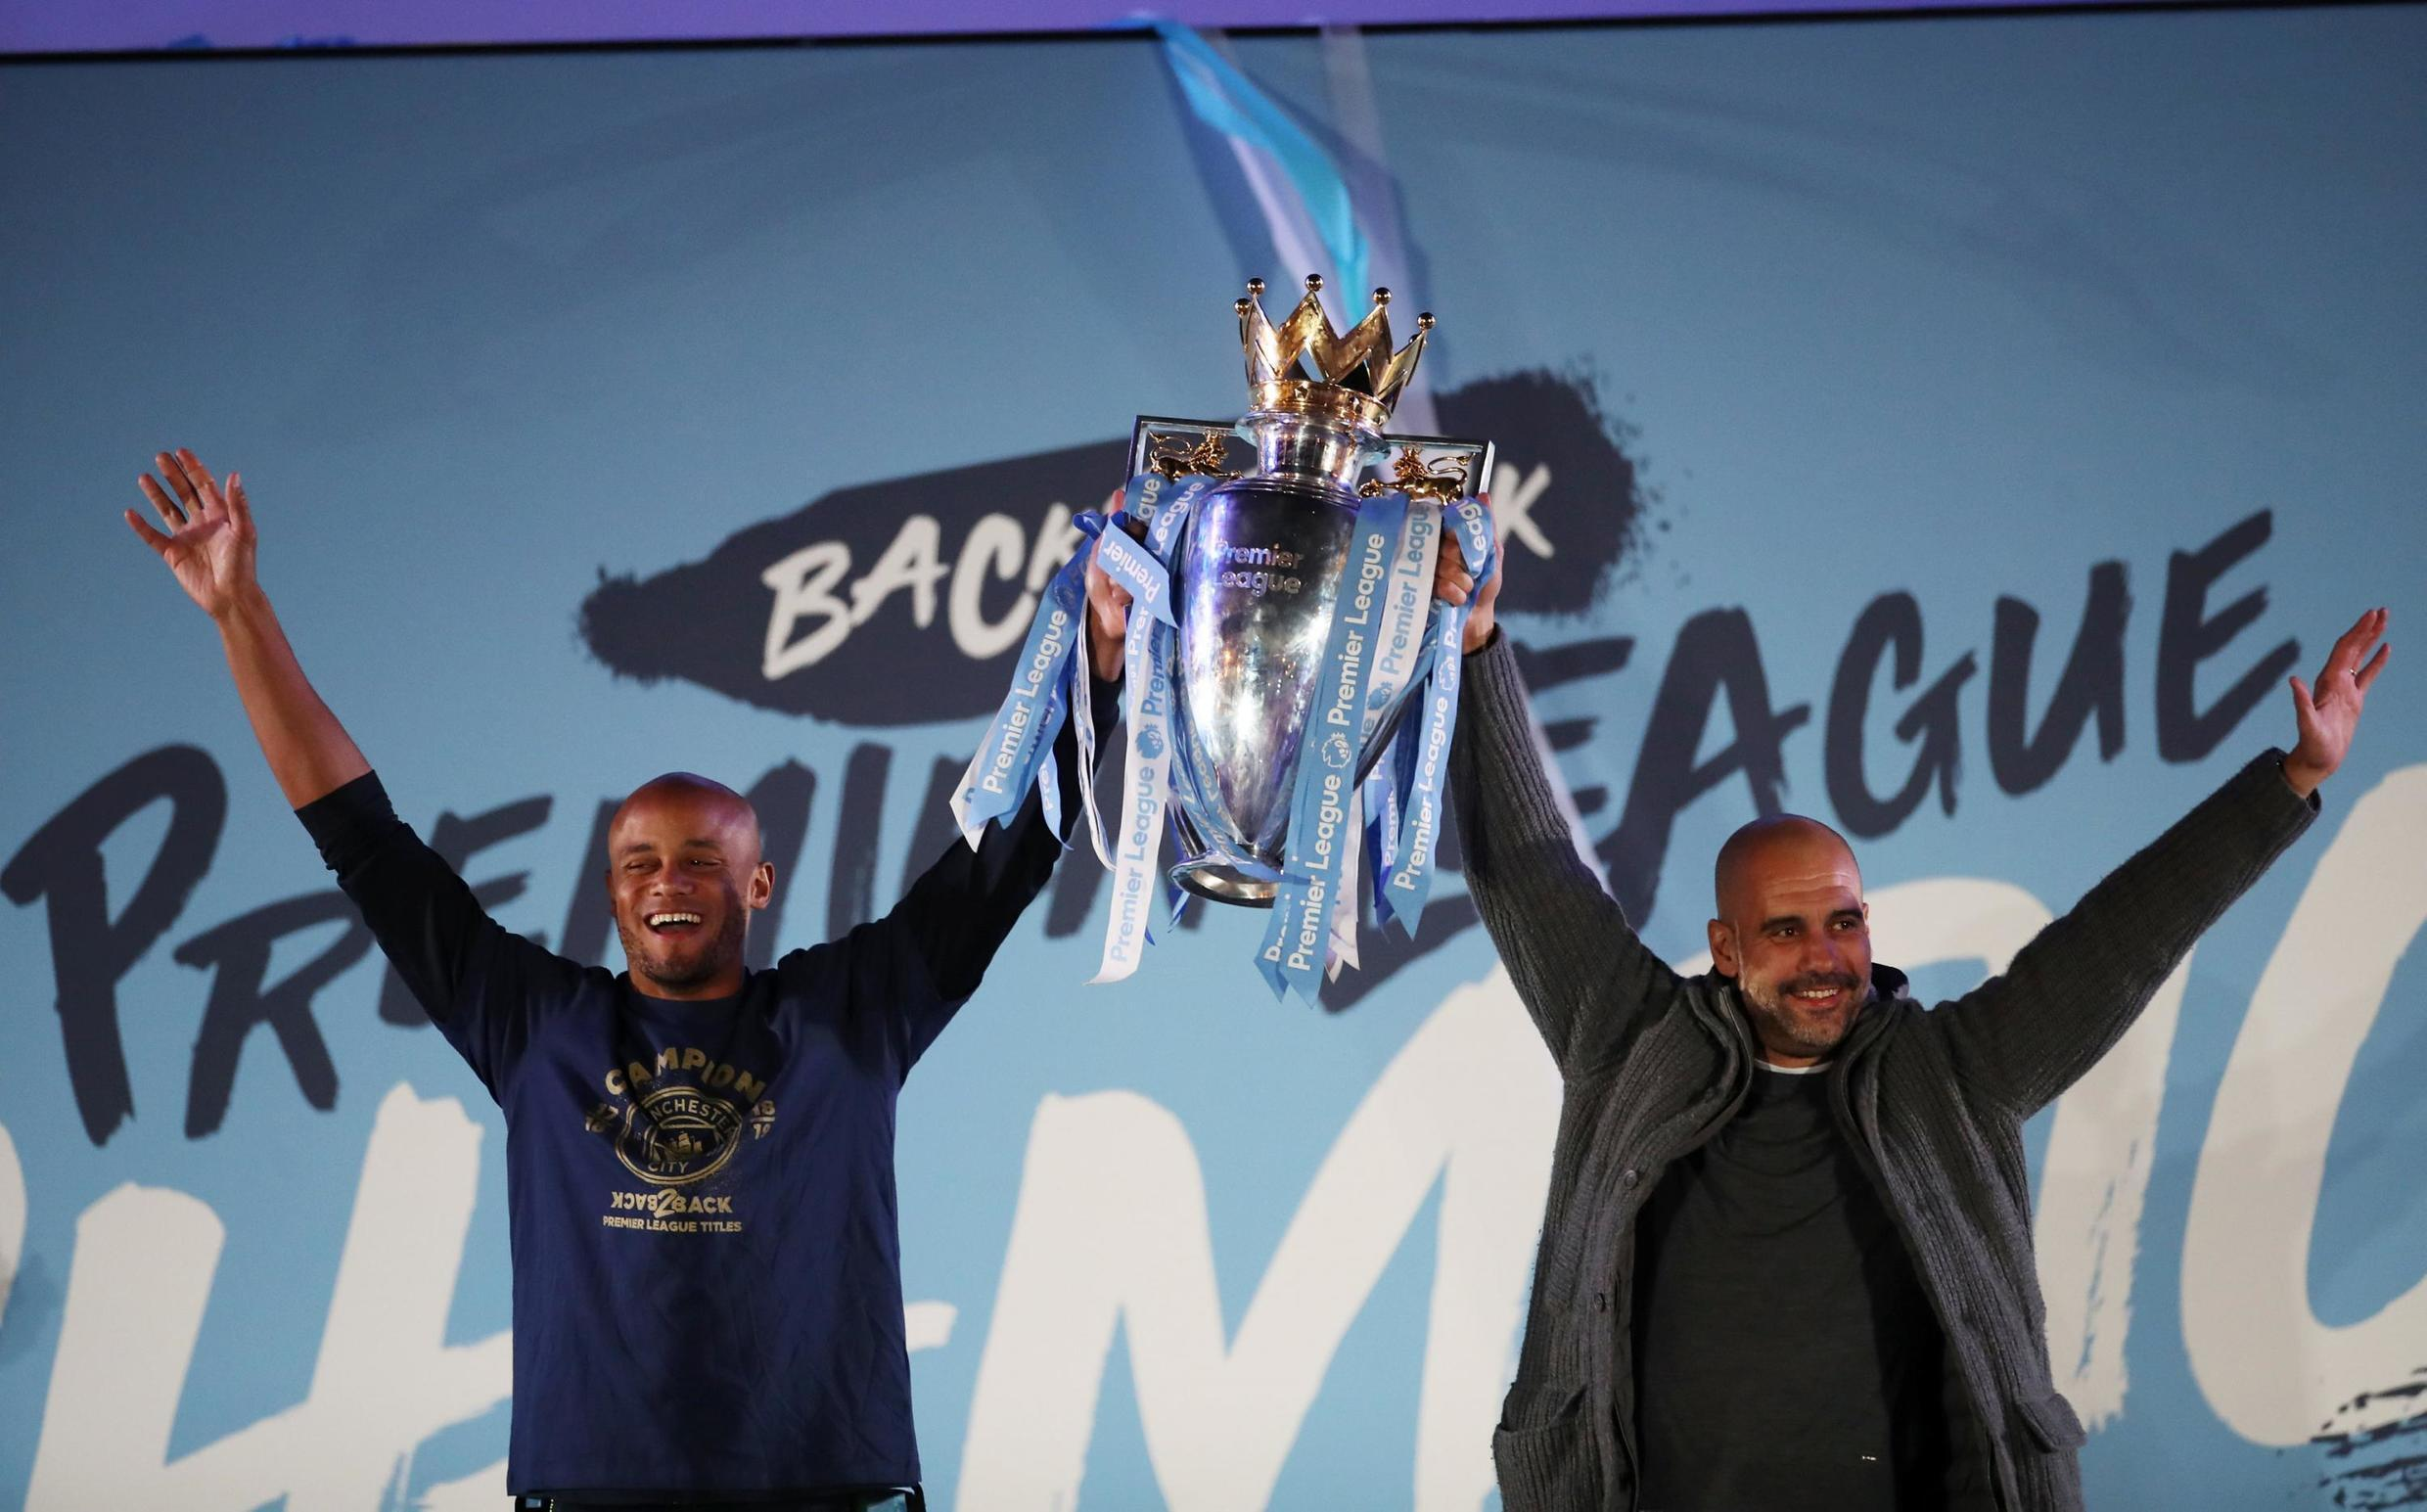 Manchester City boss Pep Guardiola (right) celebrates the retention of the English Premier League title with skipper Vincent Kompany.